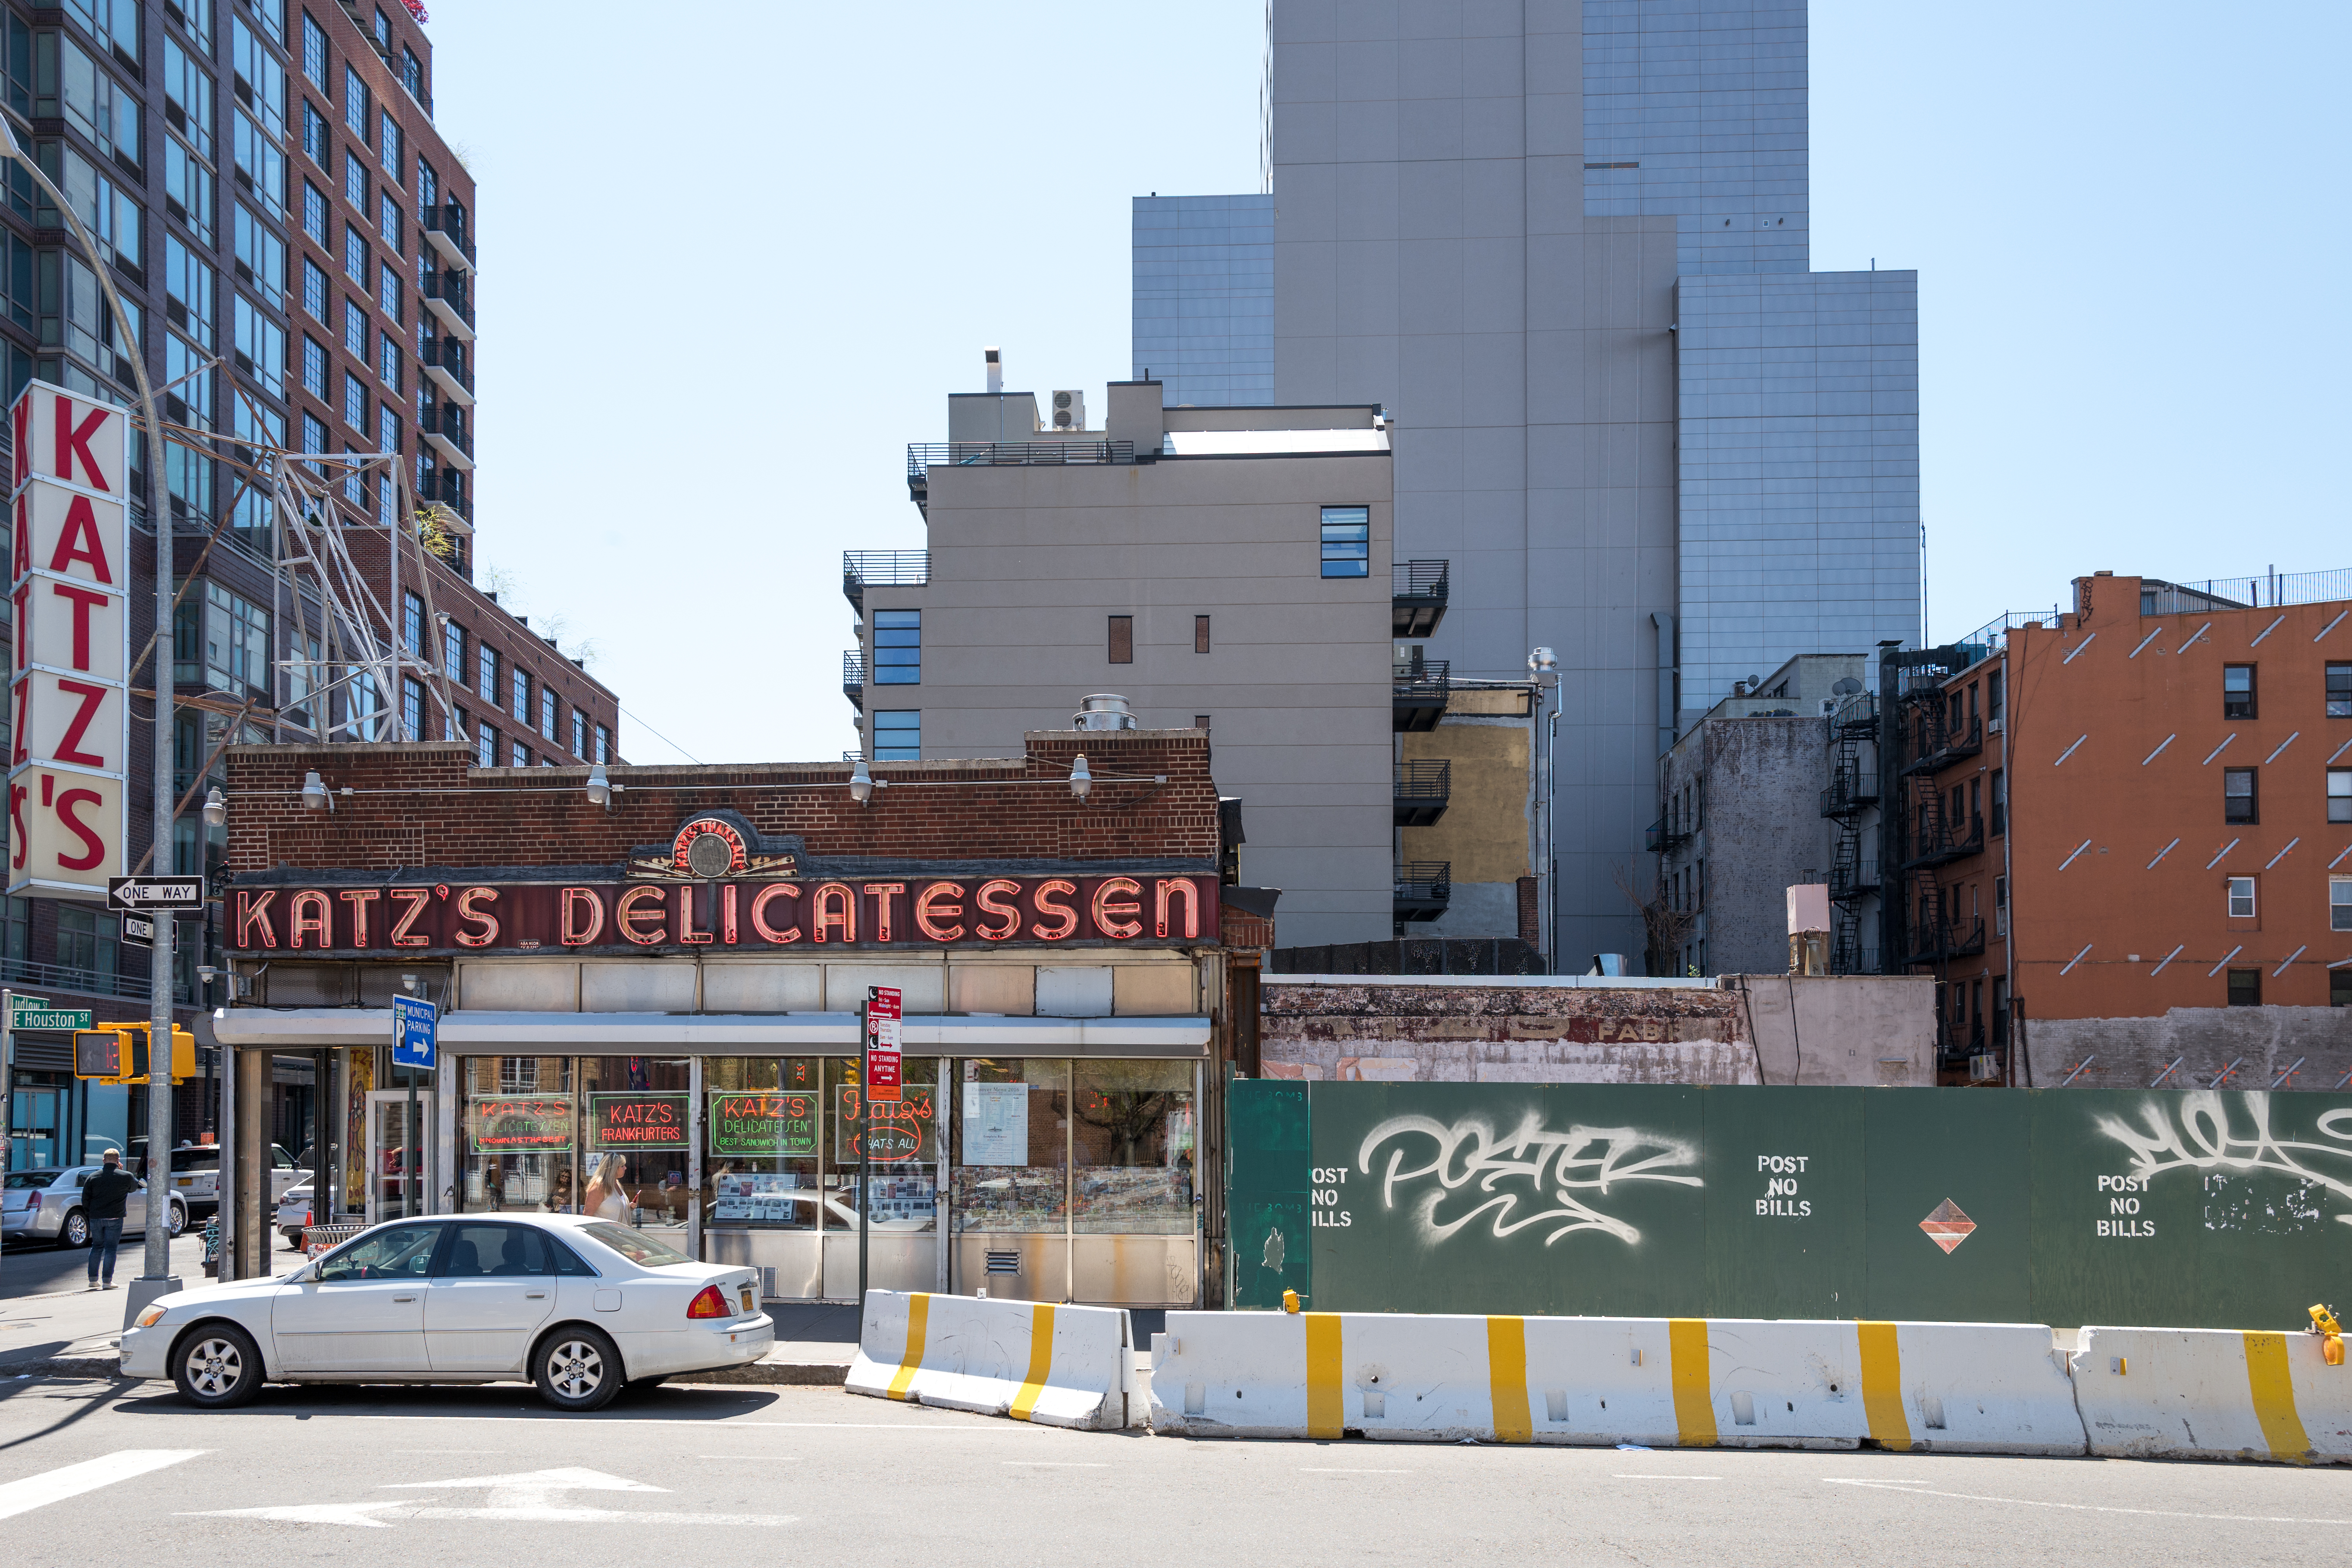 Katzs Cut A 17m Deal With Luxury Developers To Stay In Les Eater Ny